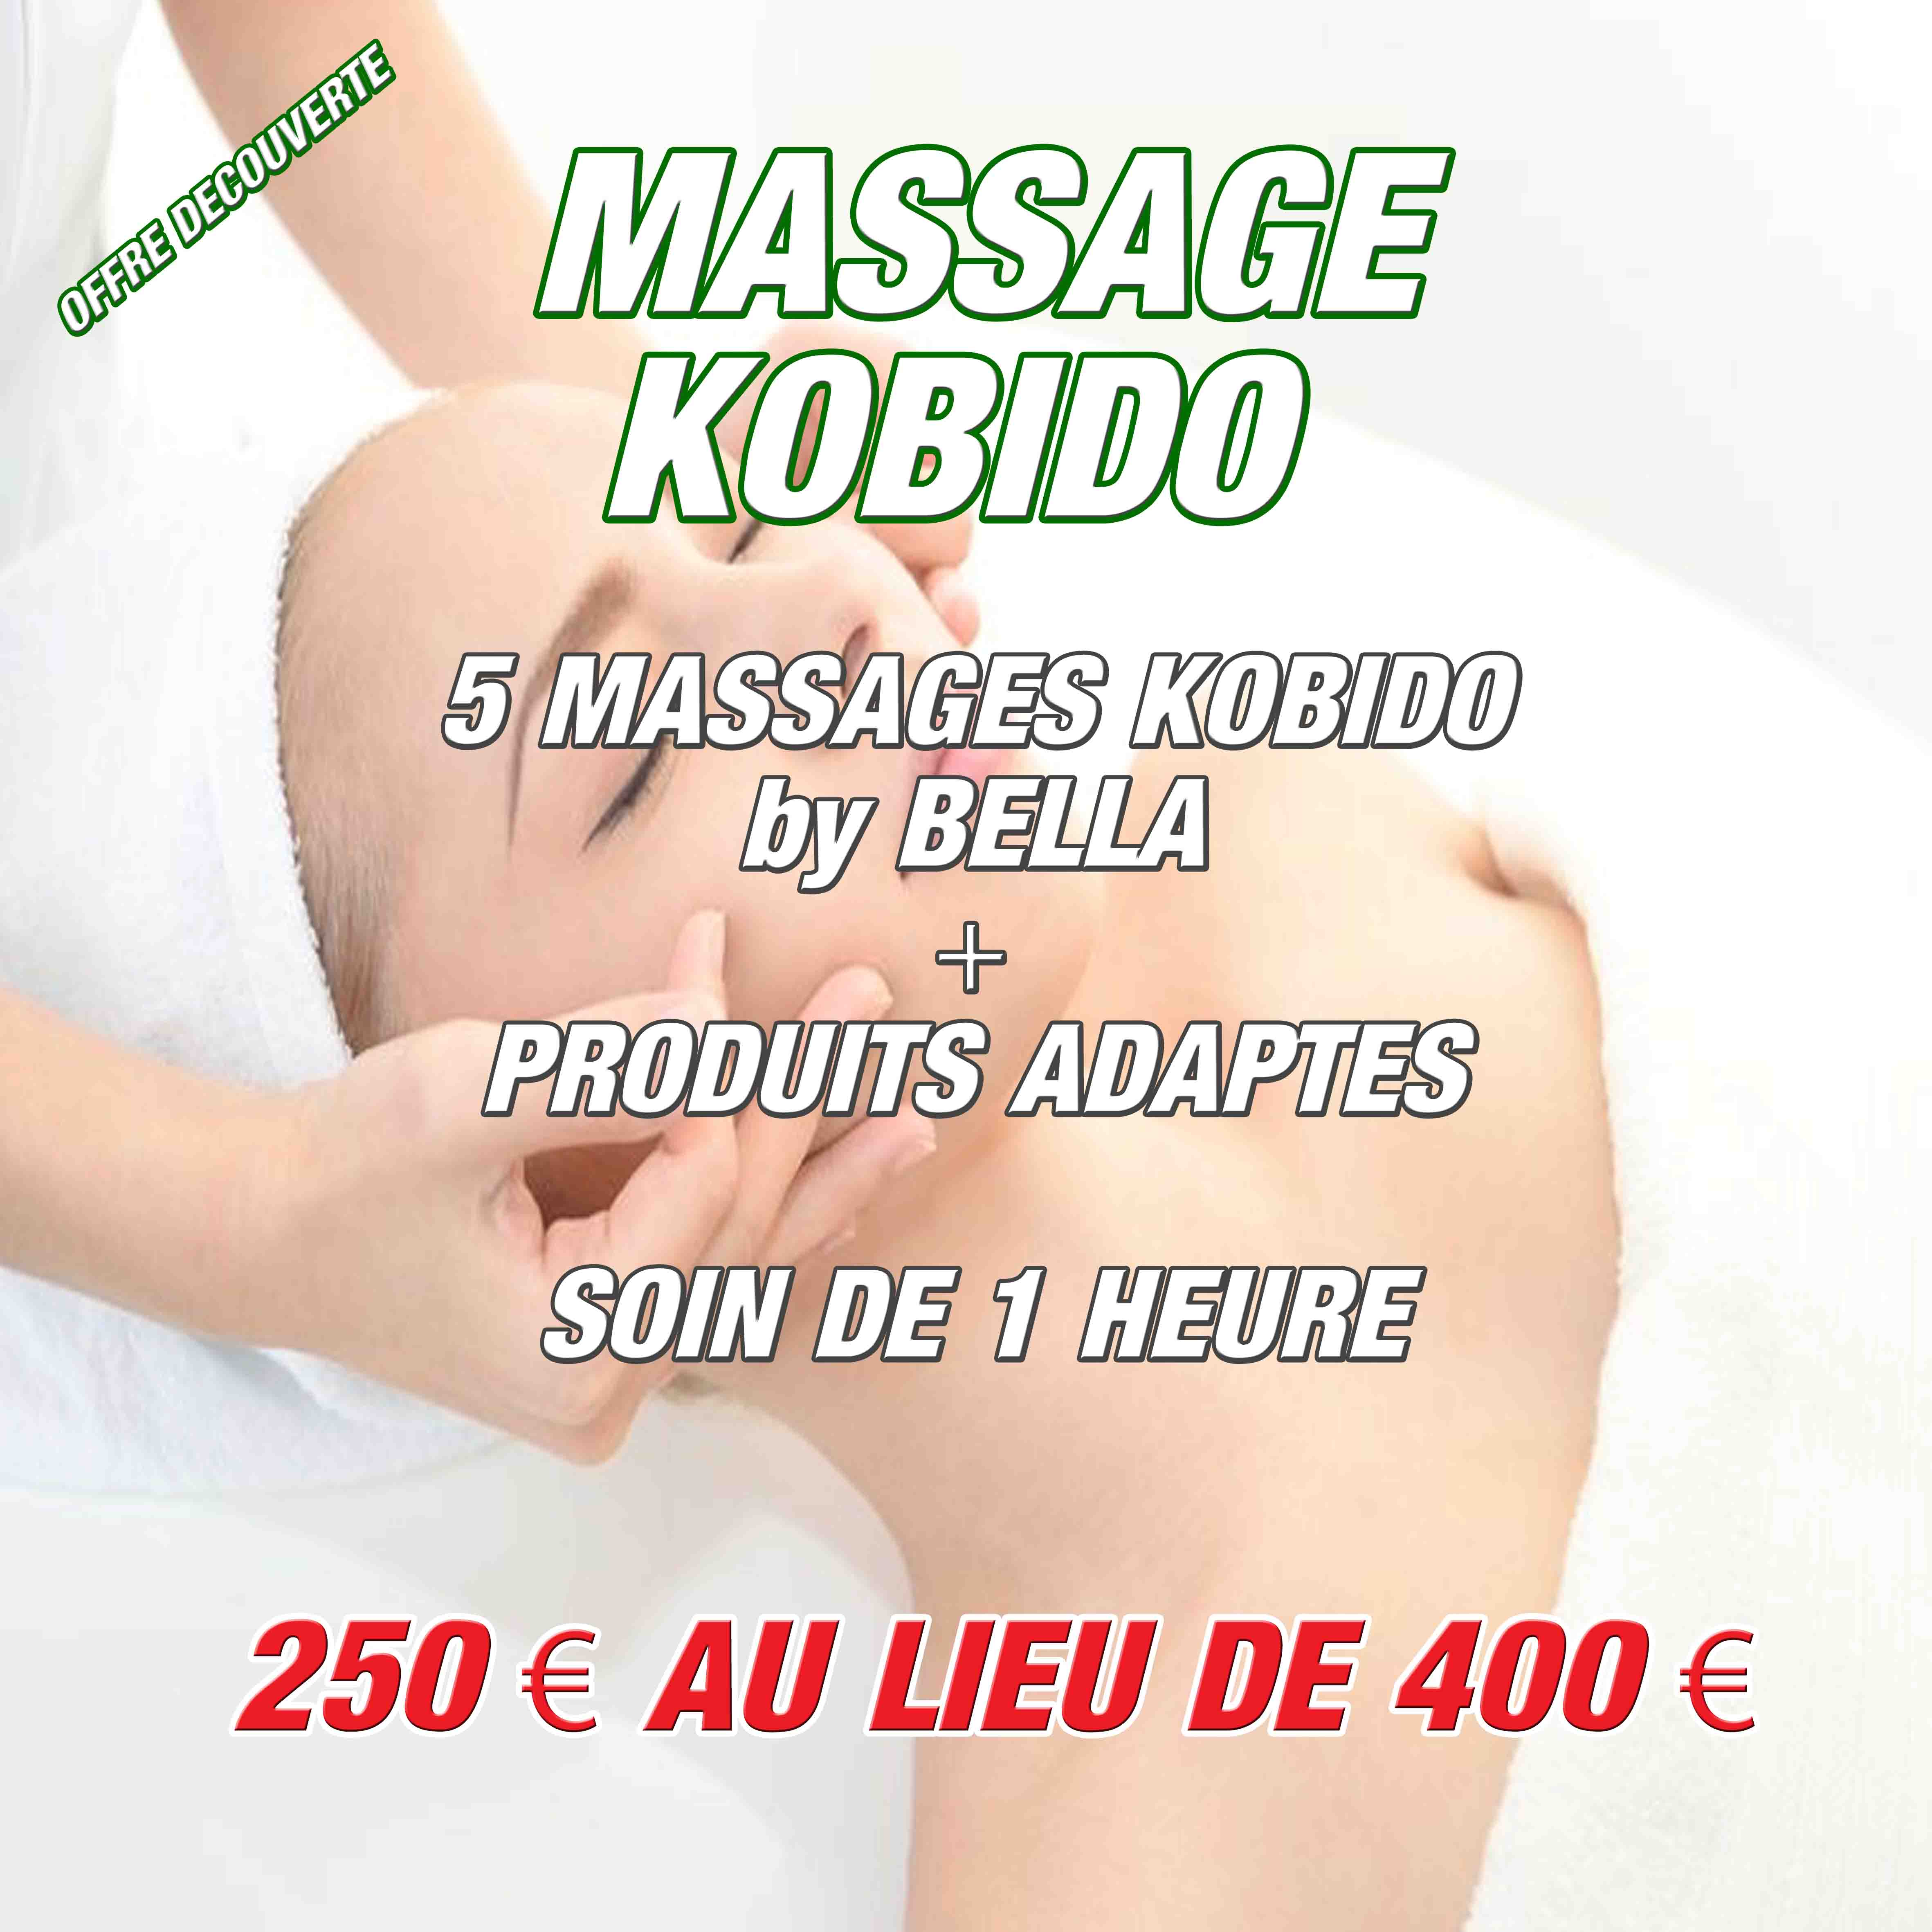 MASSAGE KOBIDO